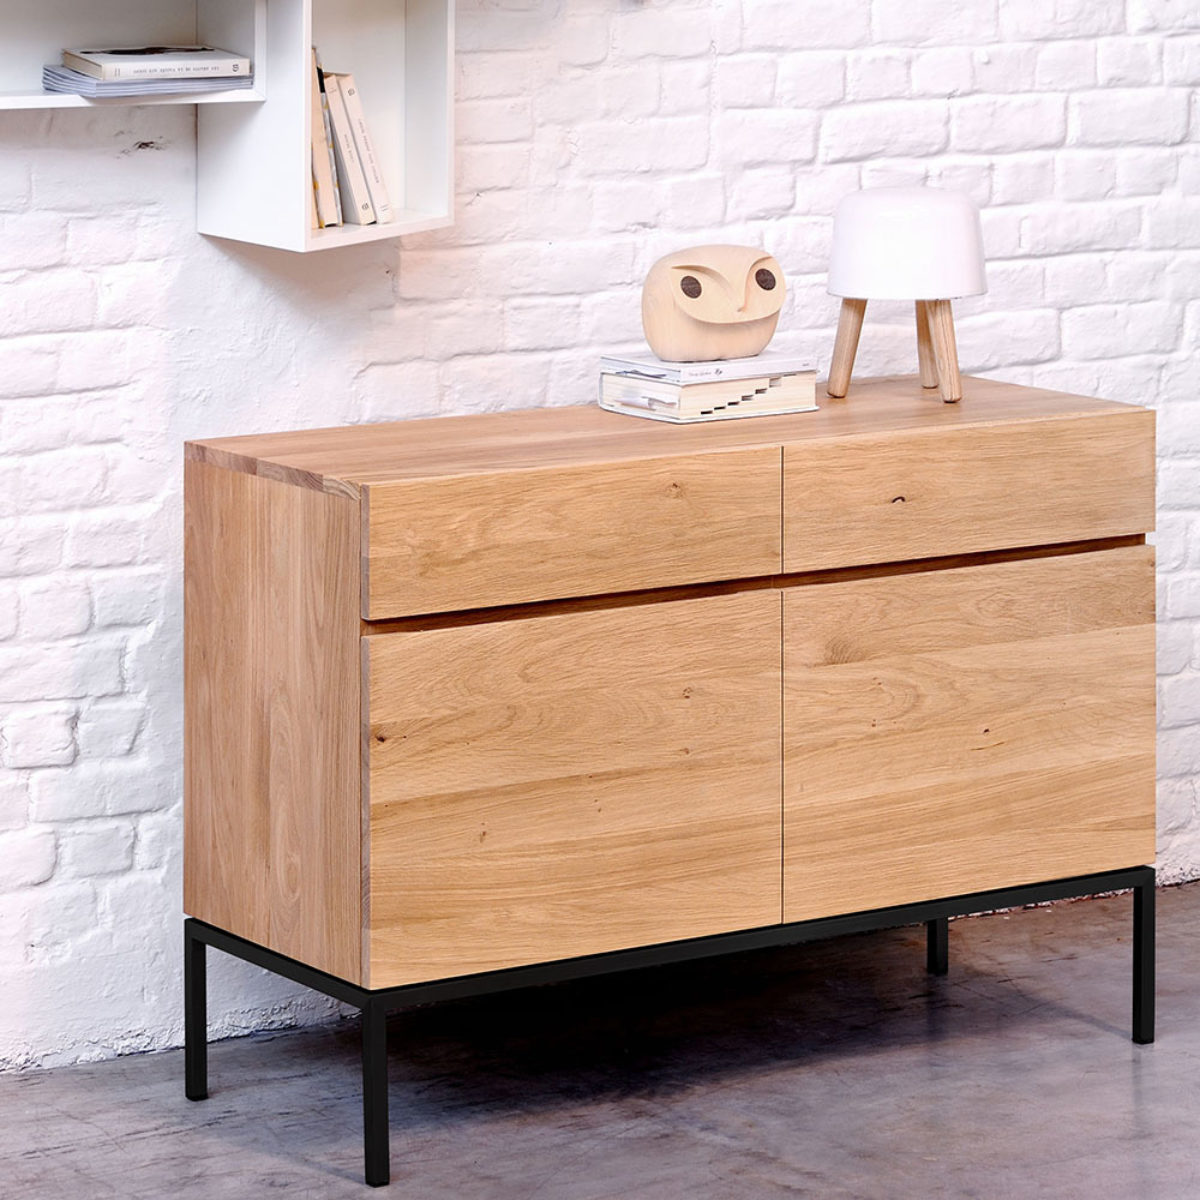 Ethnicraft Oak Ligna sideboard 01